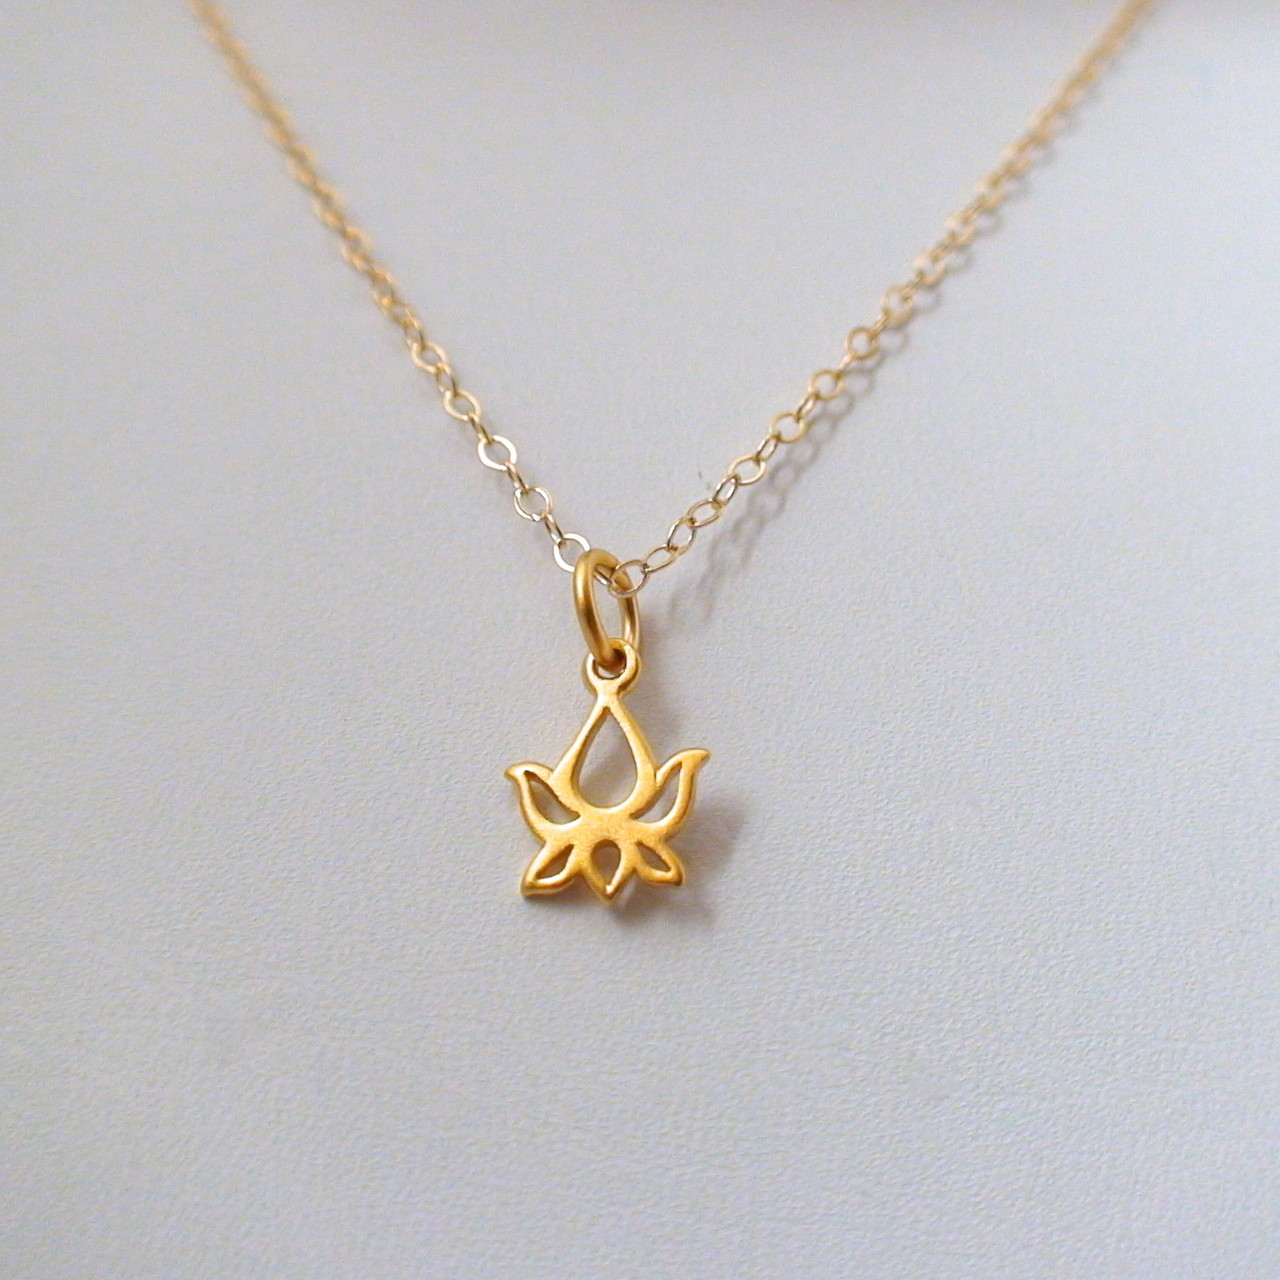 Tiny Lotus Bud Necklace 24k Gold Plated Sterling Silver